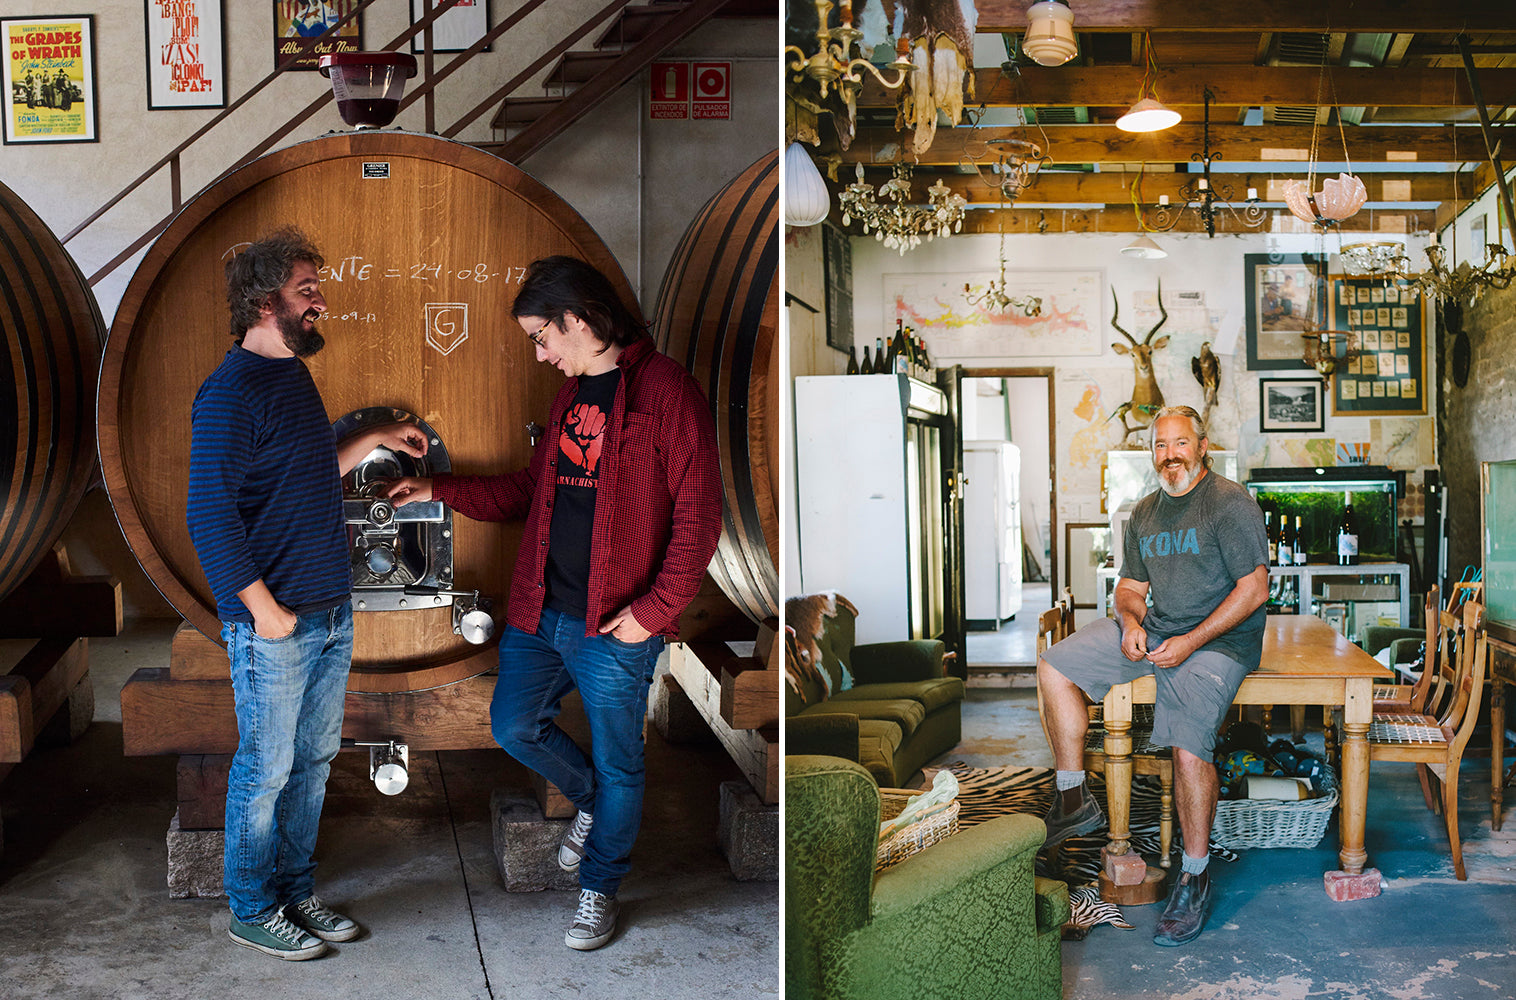 Dani and Fer aka Comando G (for Garnacha!) in their winery in Gredos. Adi Badenhorst makes exceptional Grenache from some of the oldest vines in the Swartland